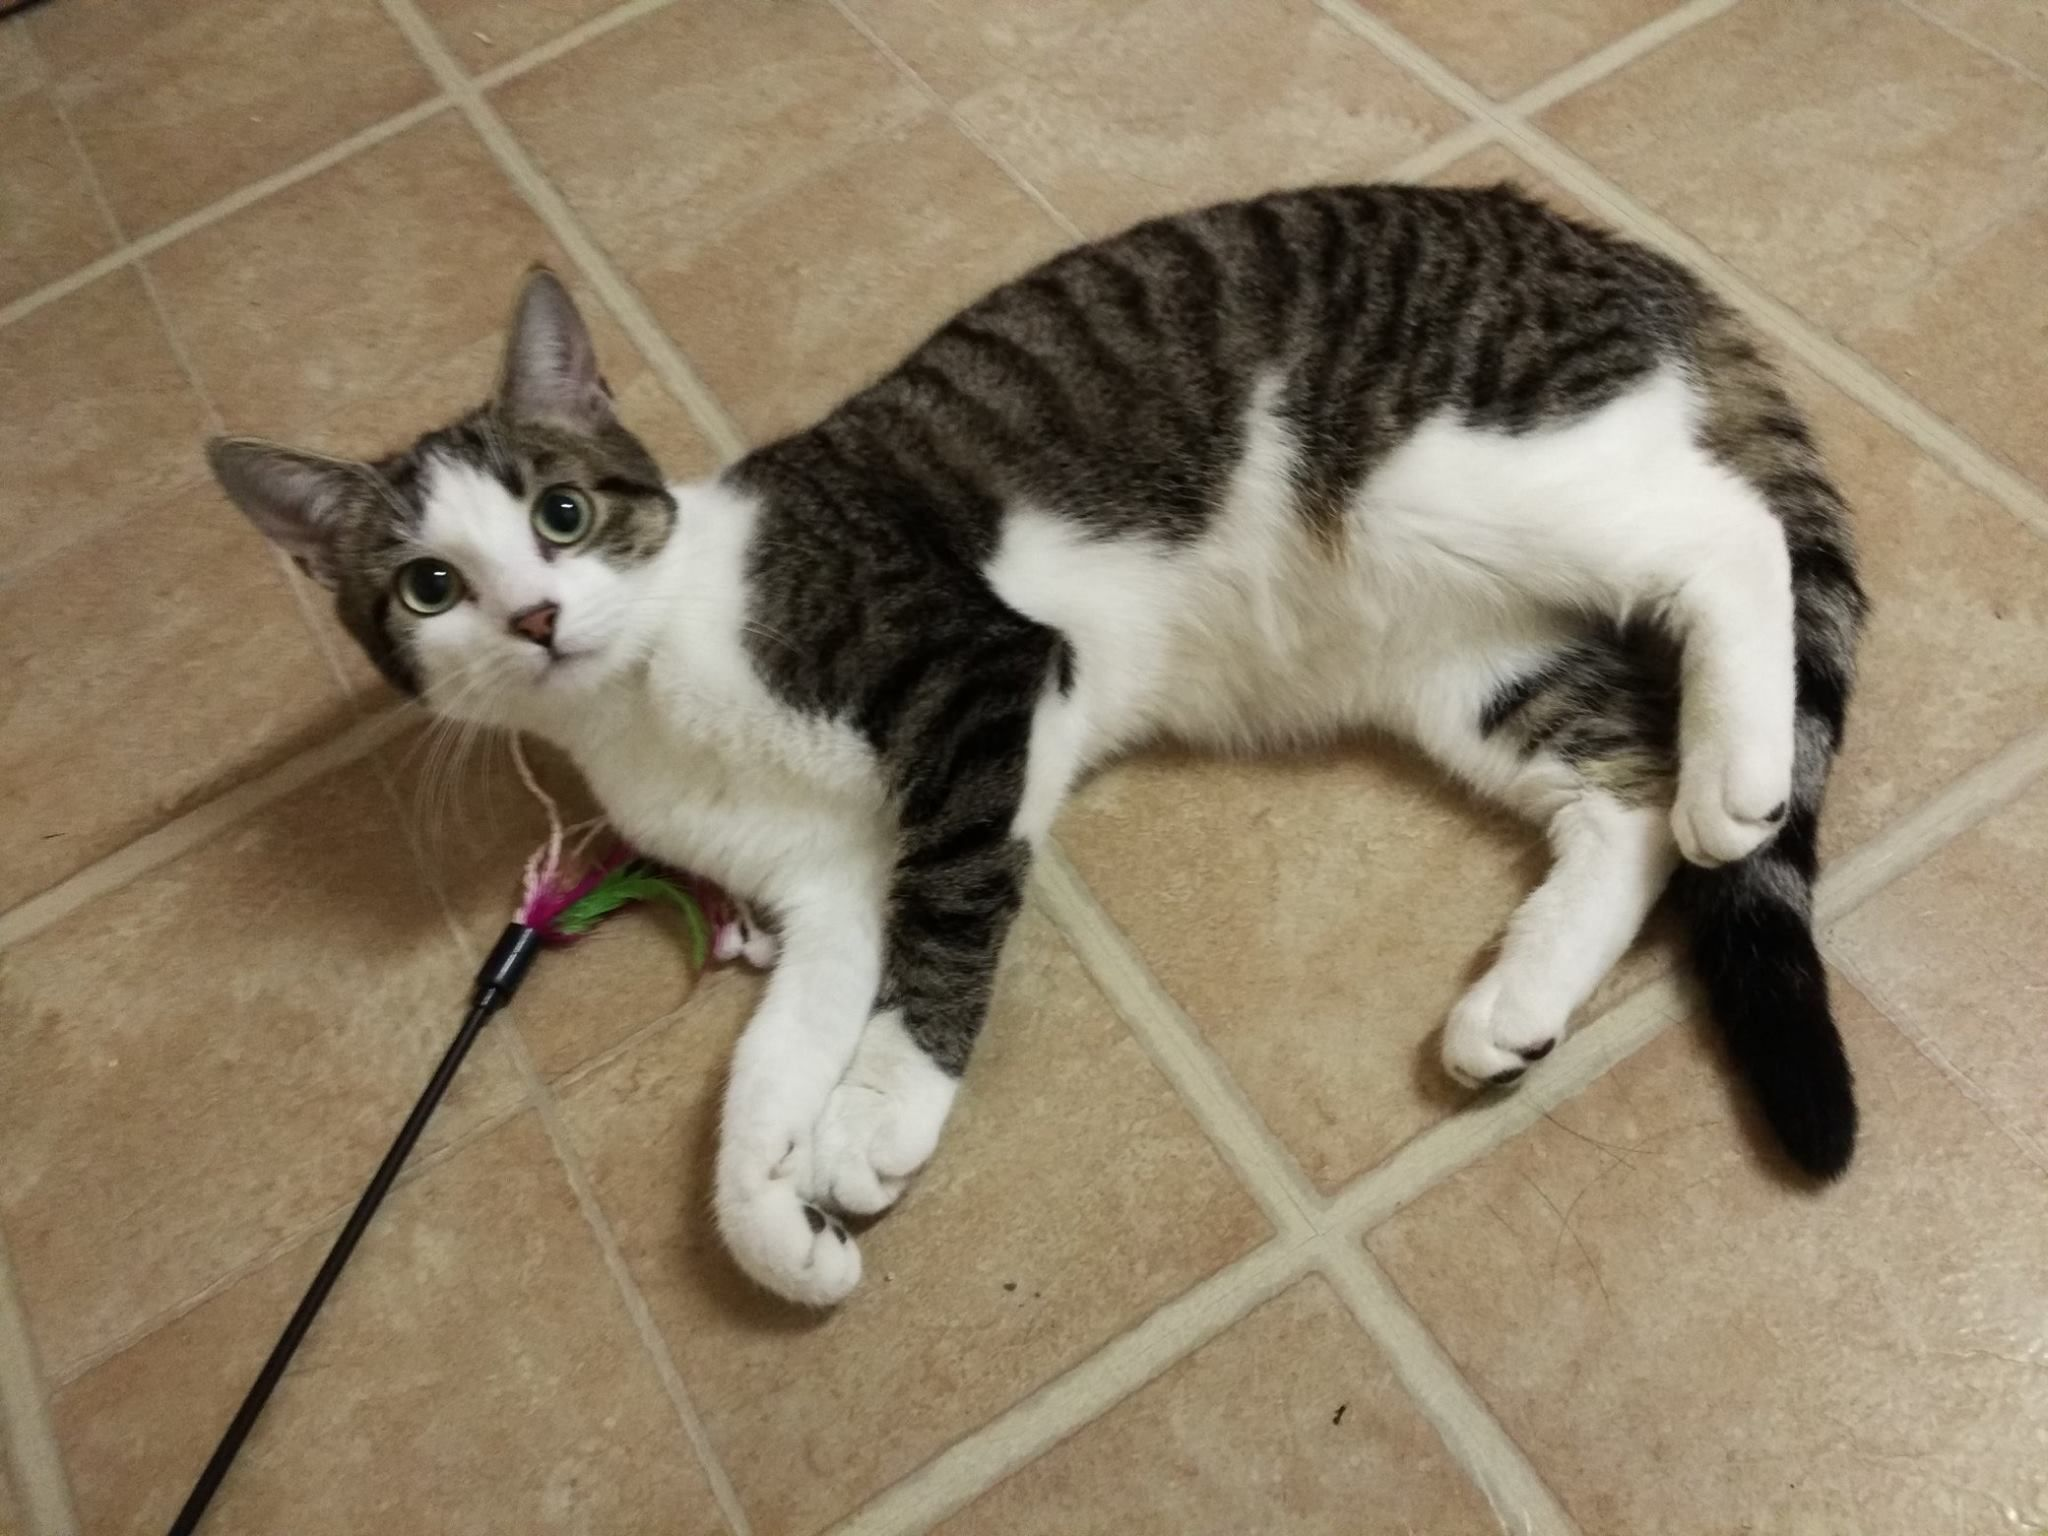 Exciting News From Montreal Truffle Here Was Verfy Lucky And Got Adopted 3 This Little Blue Fluffer Male Rescu Cat Adoption Pet Adoption Cats And Kittens